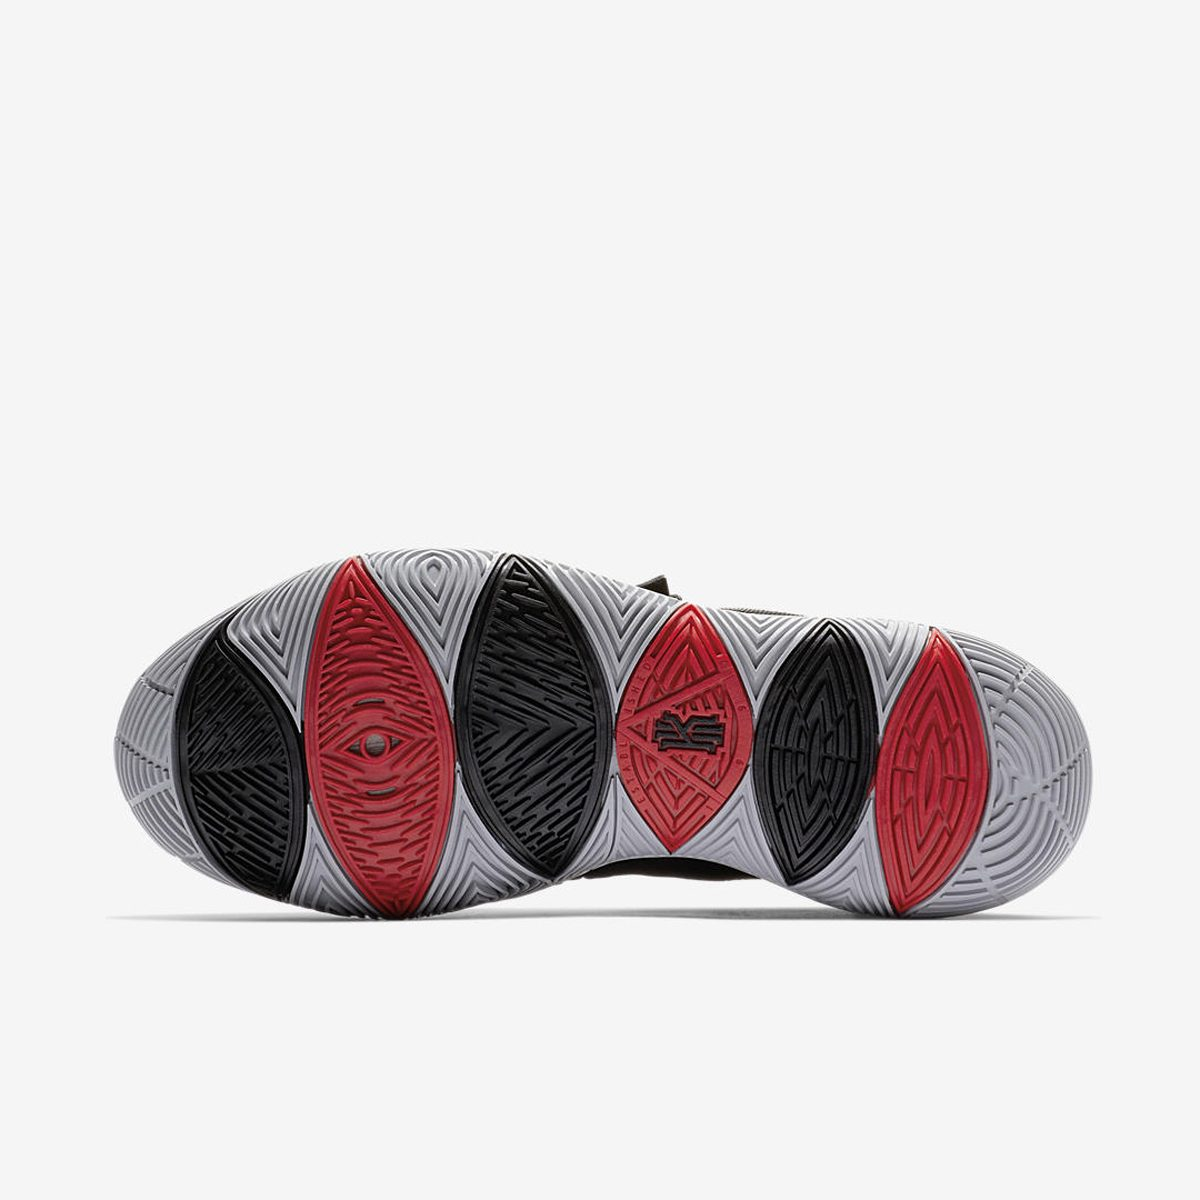 59b4c5bfa71e First Looks at the Nike Kyrie 5